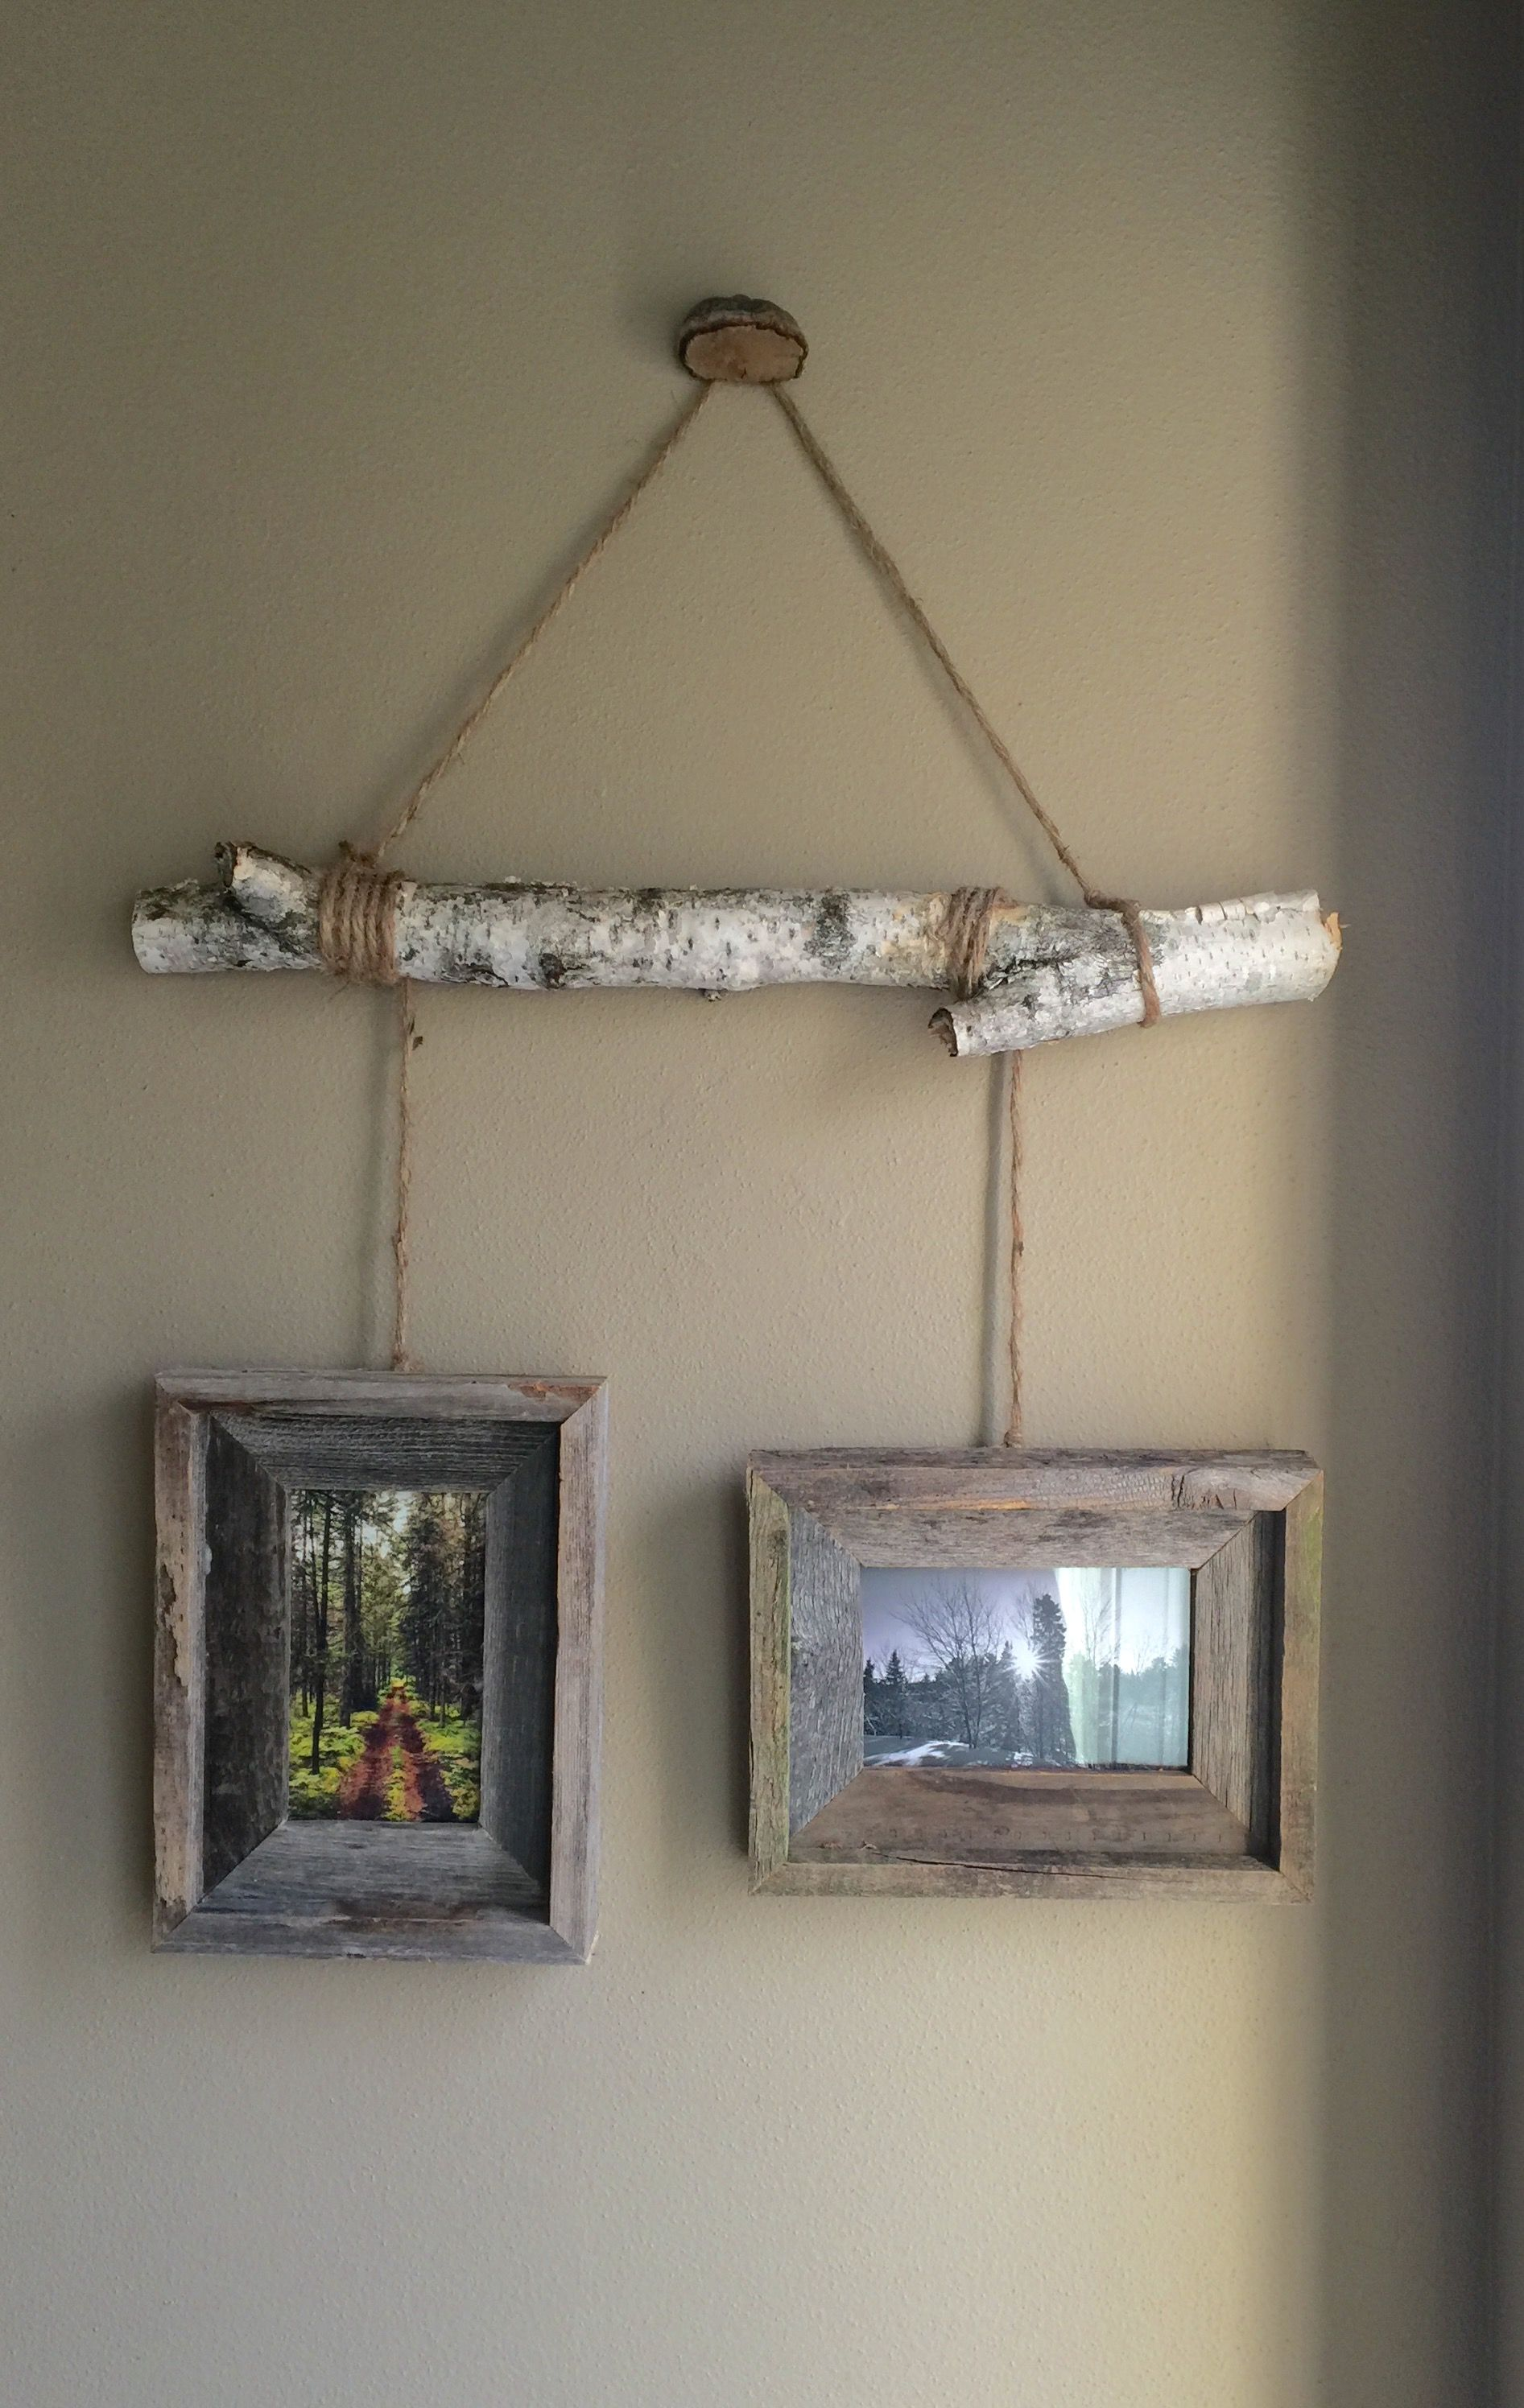 birch tree limb picture hanger by cynthia de vor birch